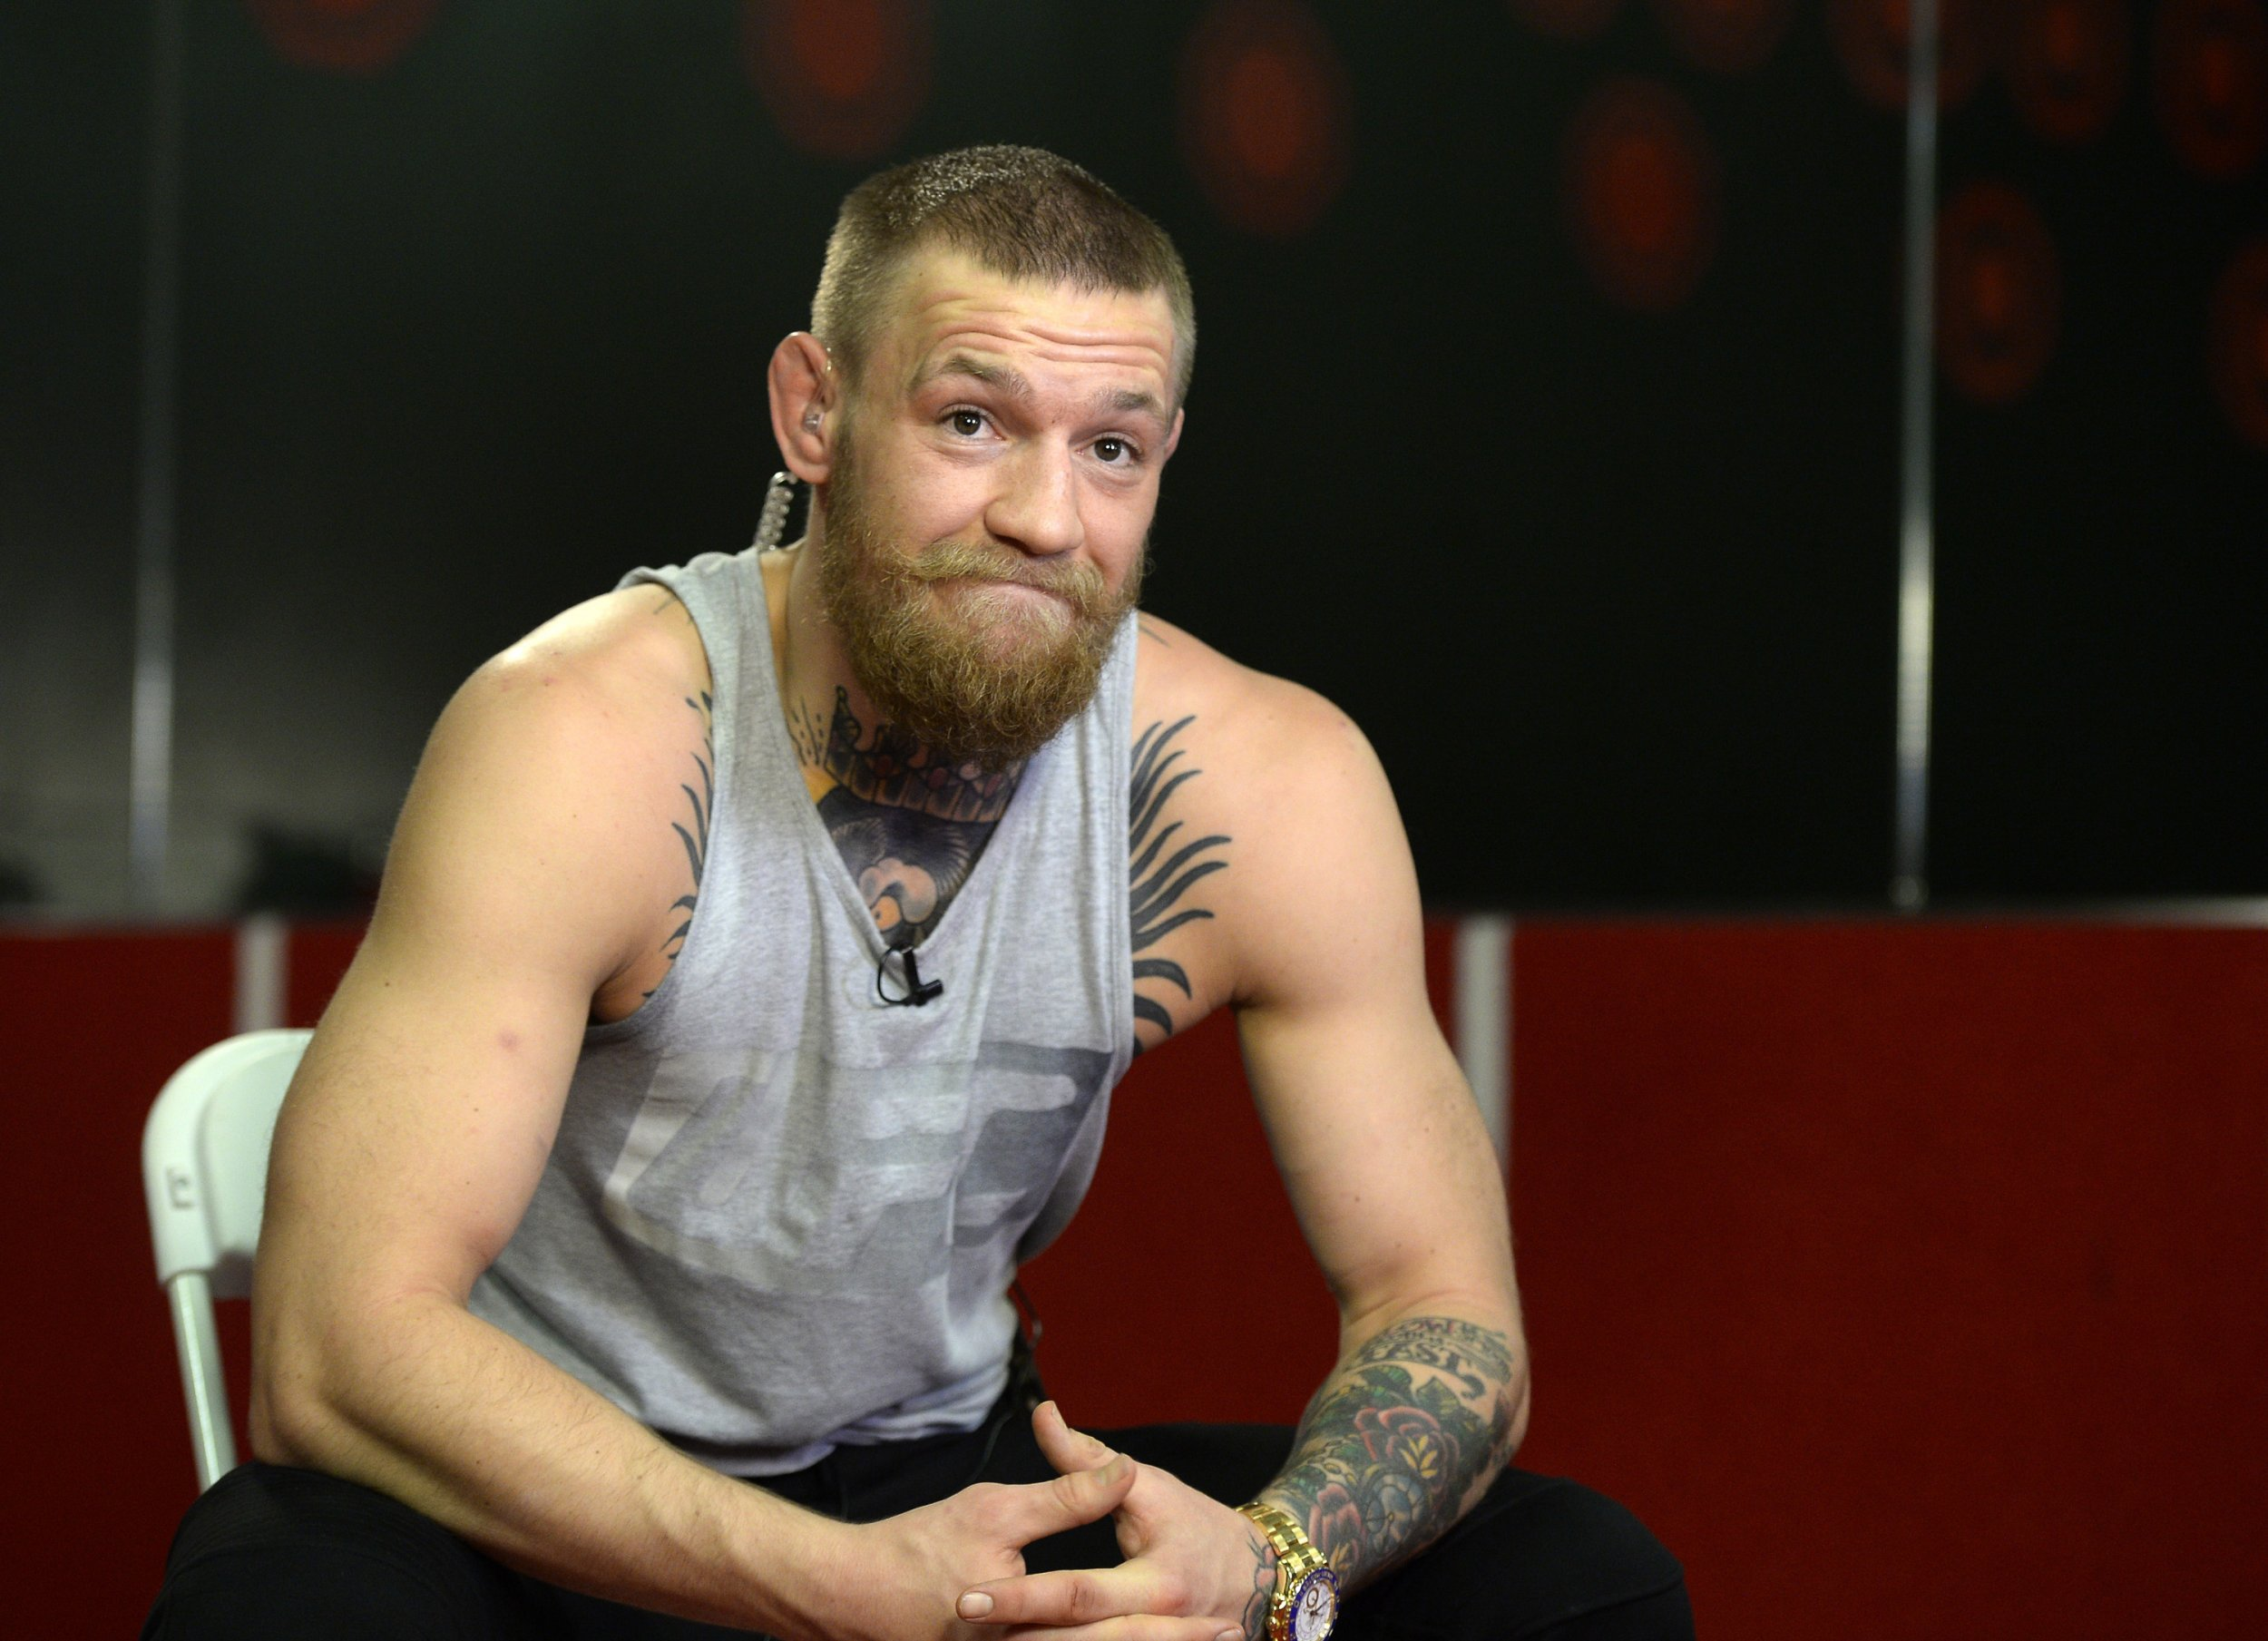 Conor McGregor has been pulled from the UFC 200 card after his apparent retirement.